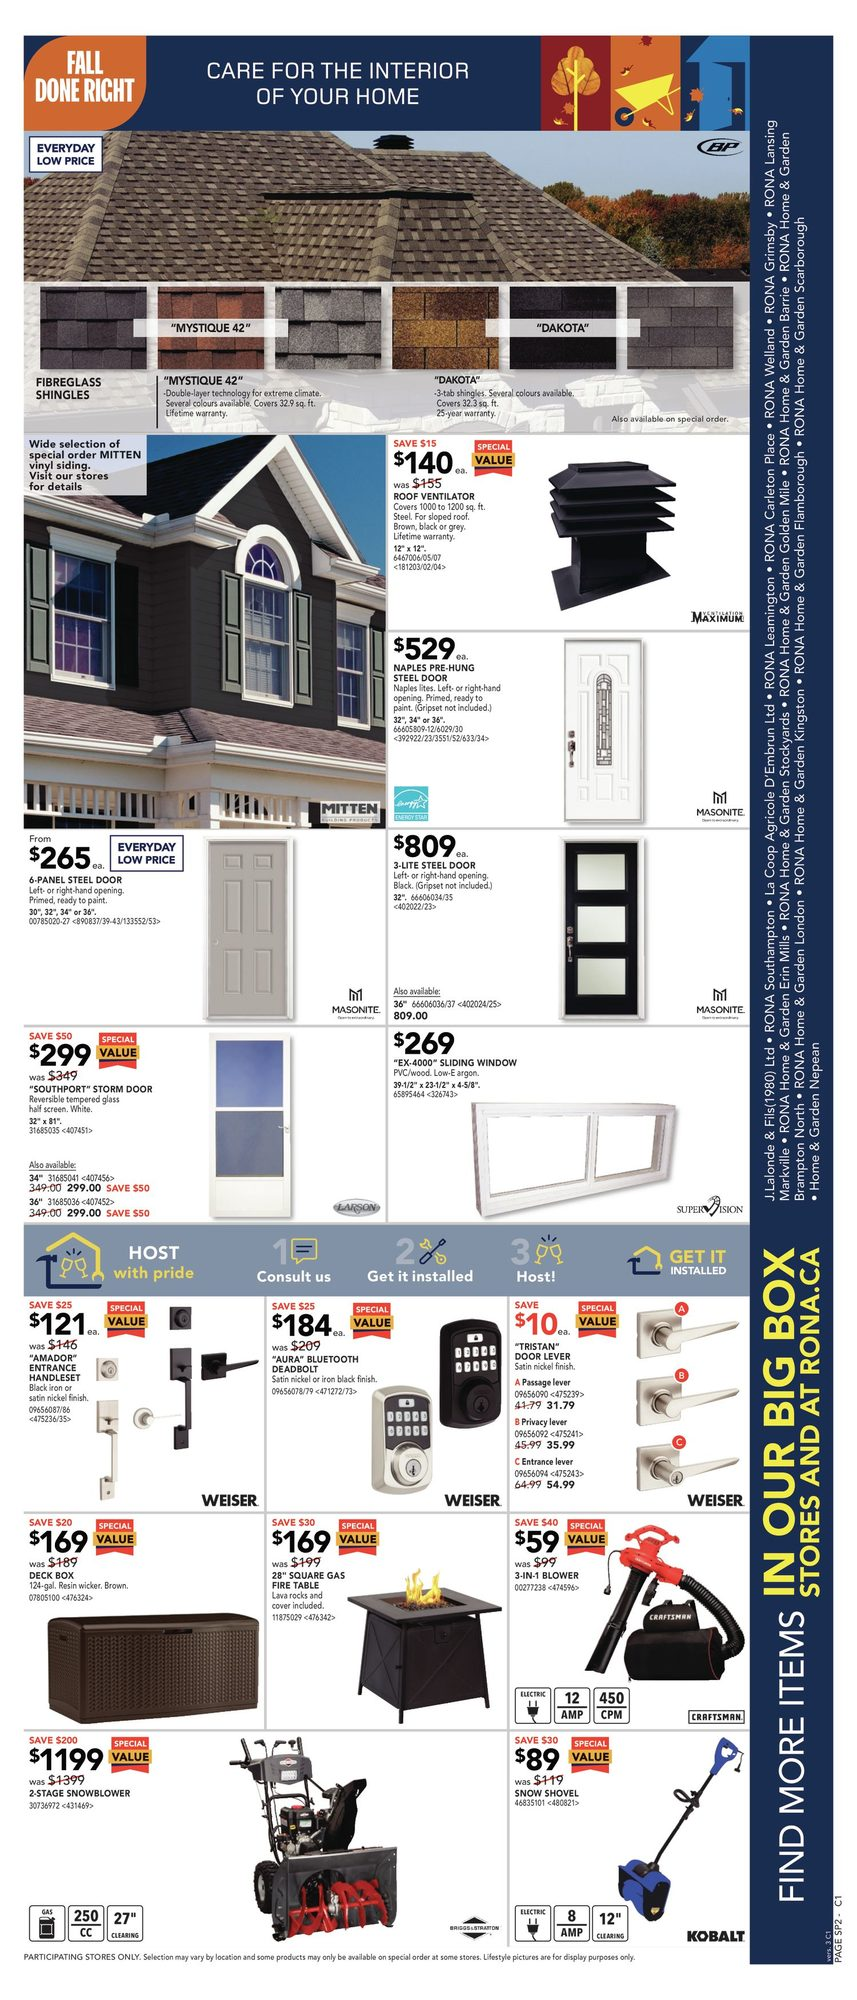 Rona - Weekly Flyer Specials - Page 6